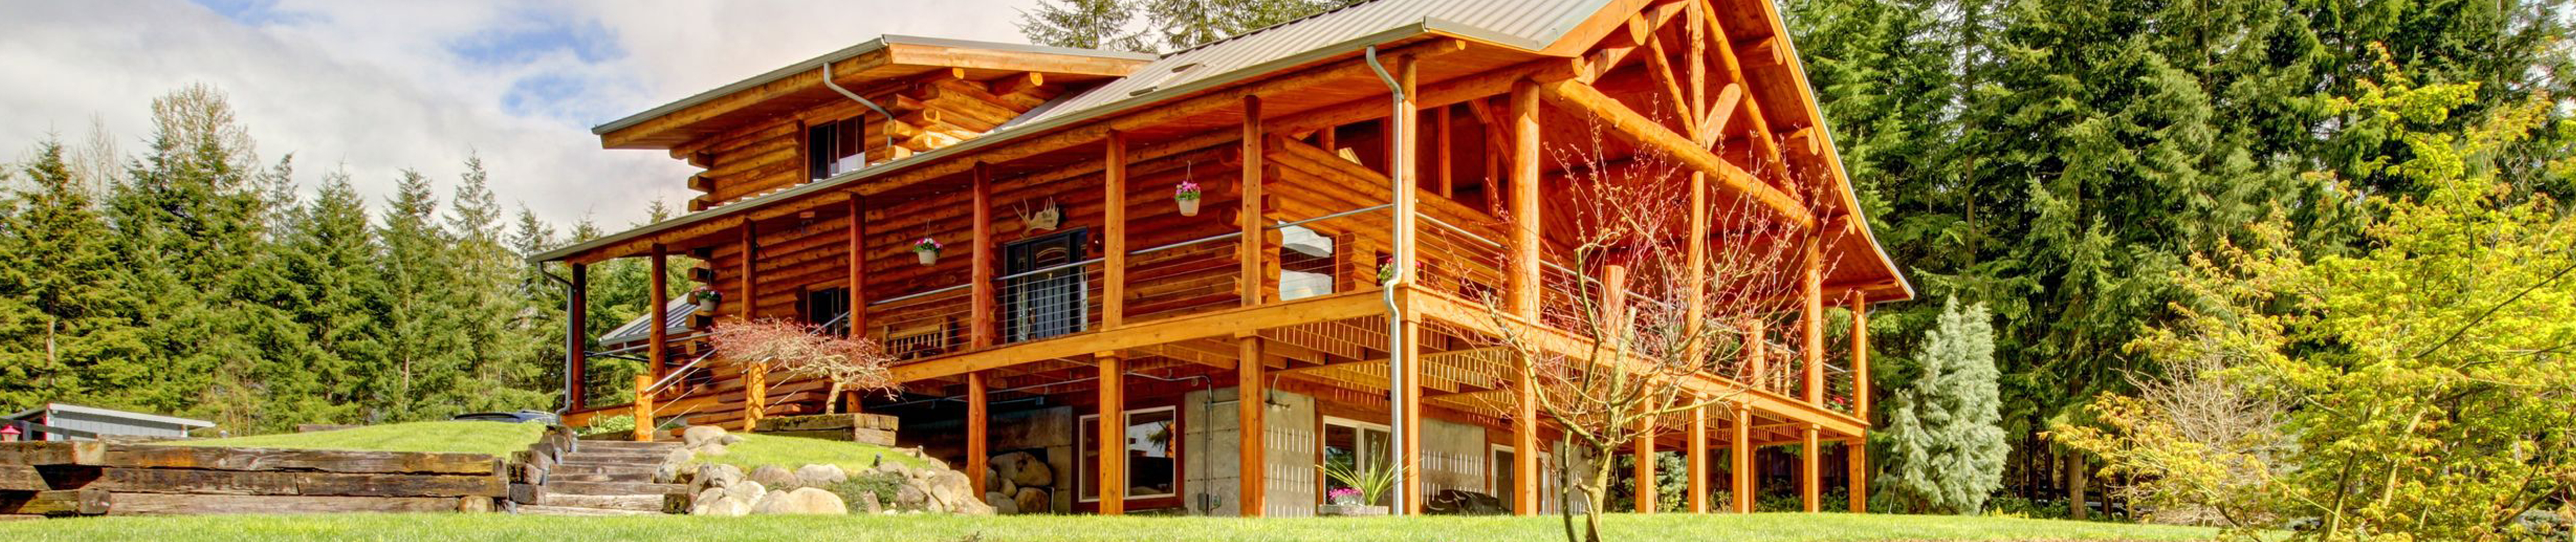 Log Timber Frame Homes - Pine Harbor Log Homes